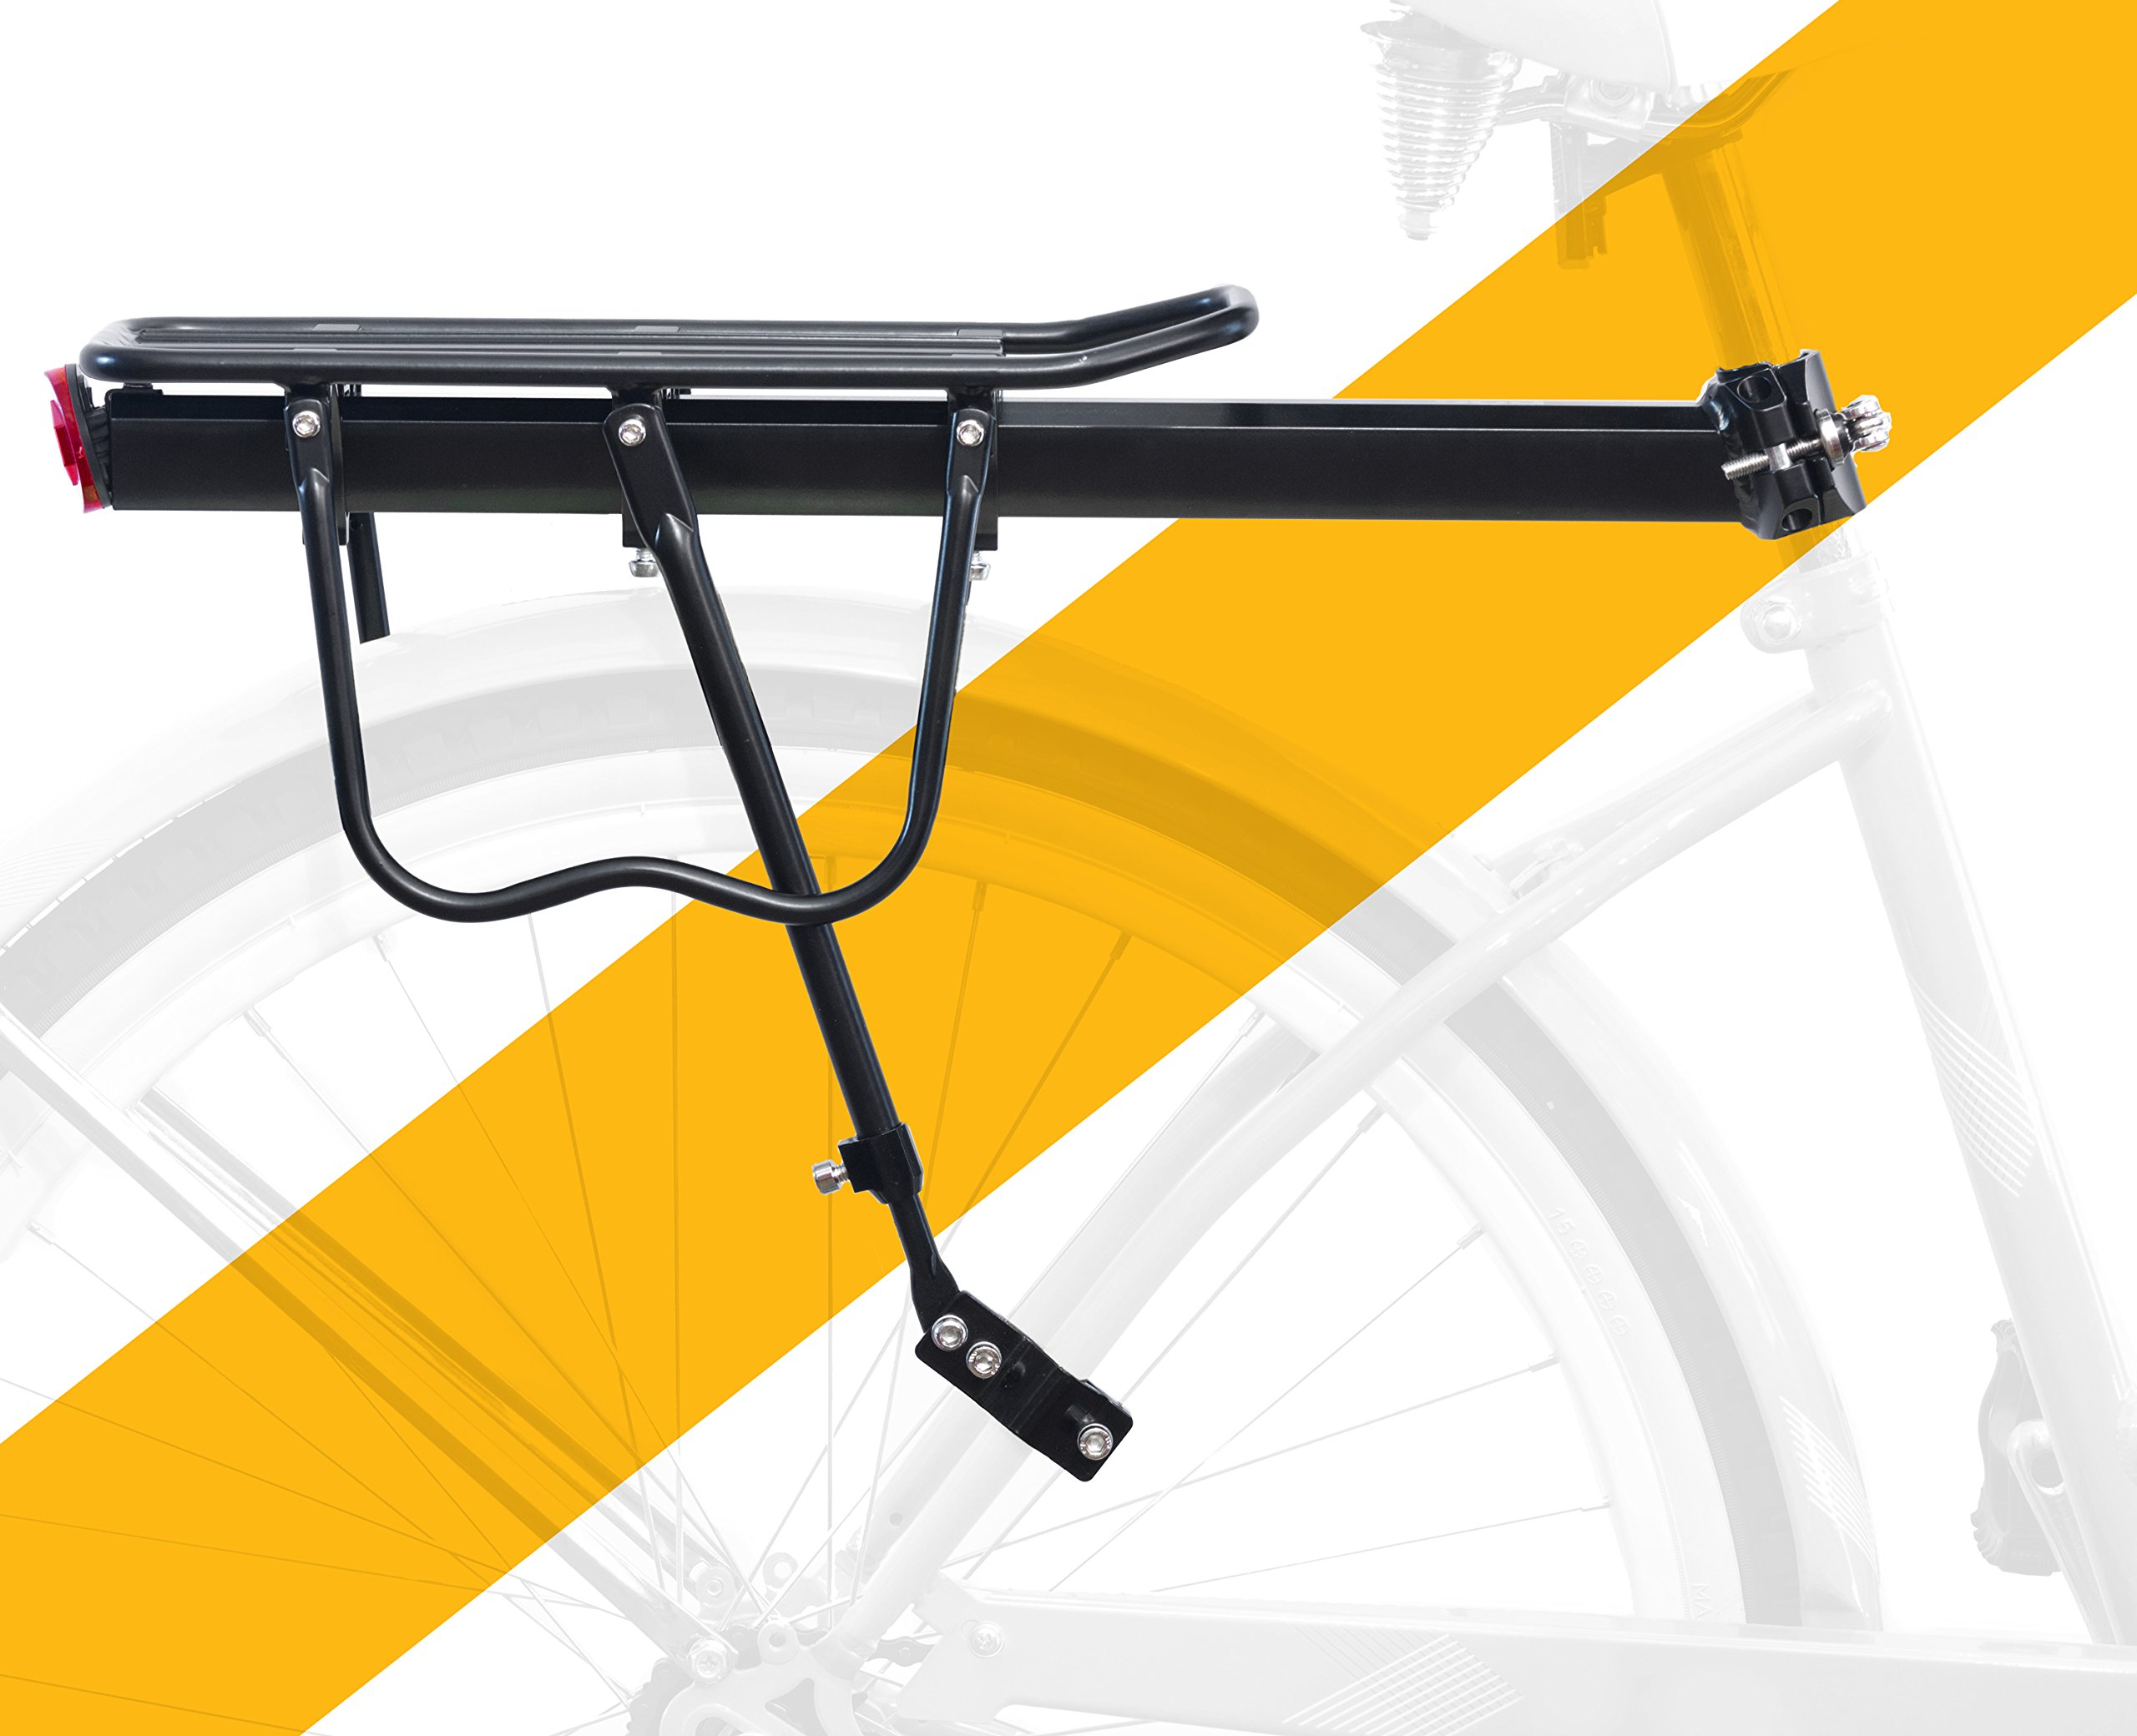 BoG Products Rear Bike Rack Heavy Duty Alloy Bicycle Carrier 110 Lb Capacity Easy to Install Guaranteed Satisfaction & Durability